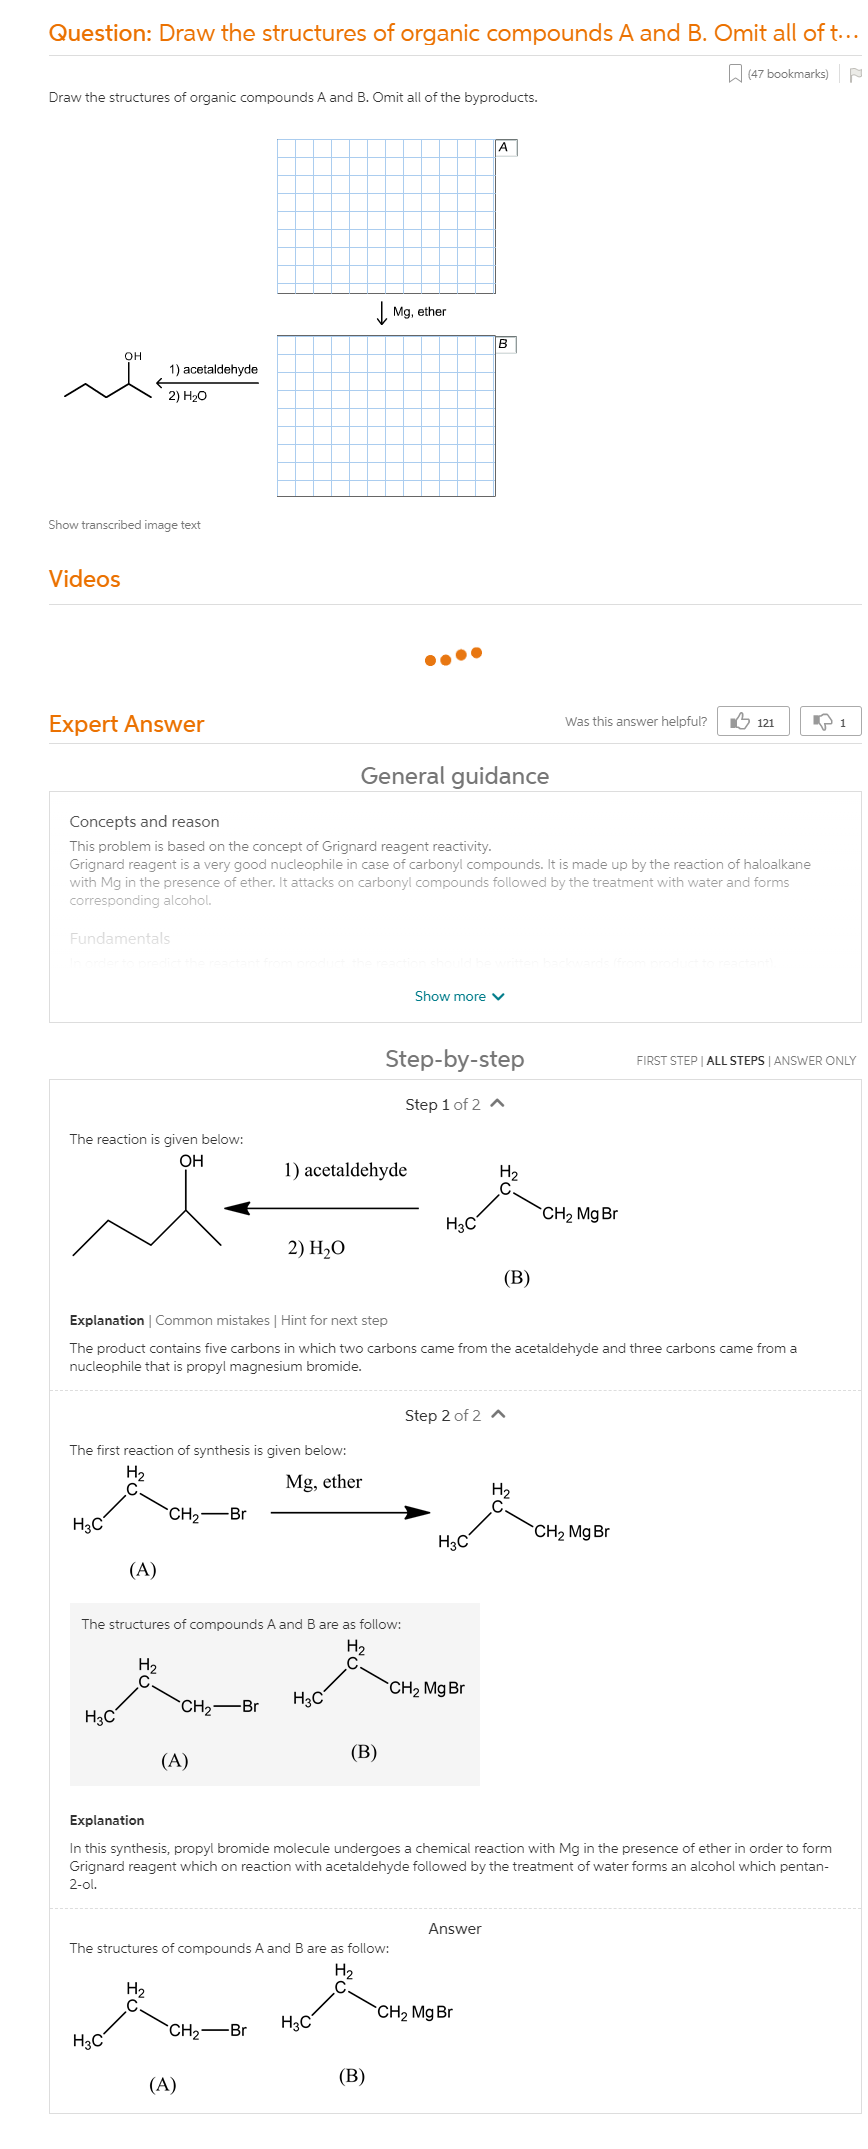 Draw The Structures Of Organic Compounds A And B. Omit All Of The  Byproducts.